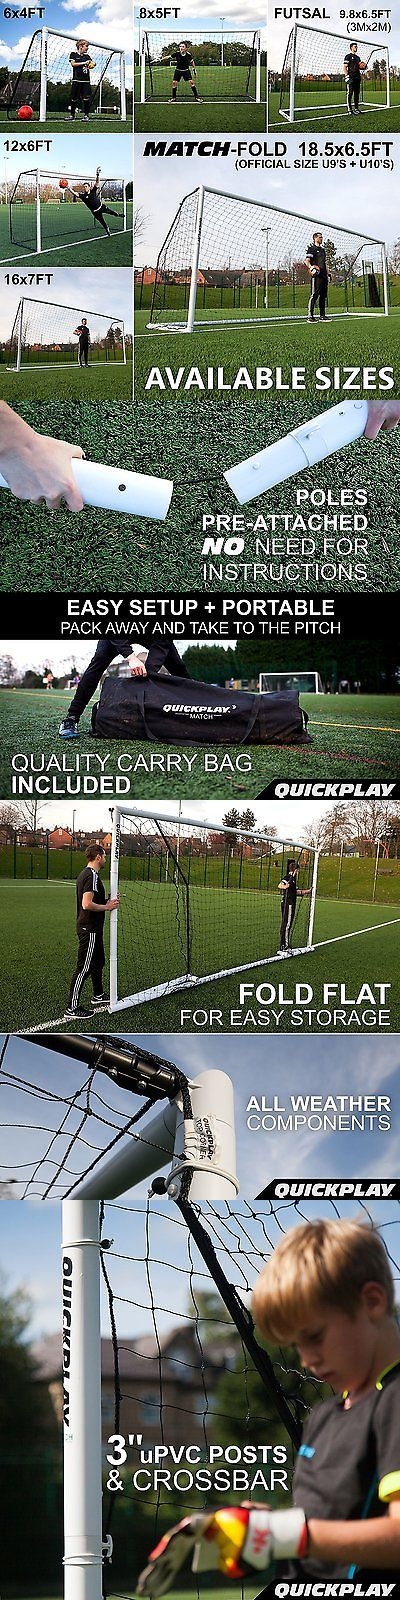 Goals and Nets 159180: Quickplay Pro Match-Fold Portable Soccer Goal 18.5 X 6.5 U9sandu10s Official Size -> BUY IT NOW ONLY: $349.99 on eBay!